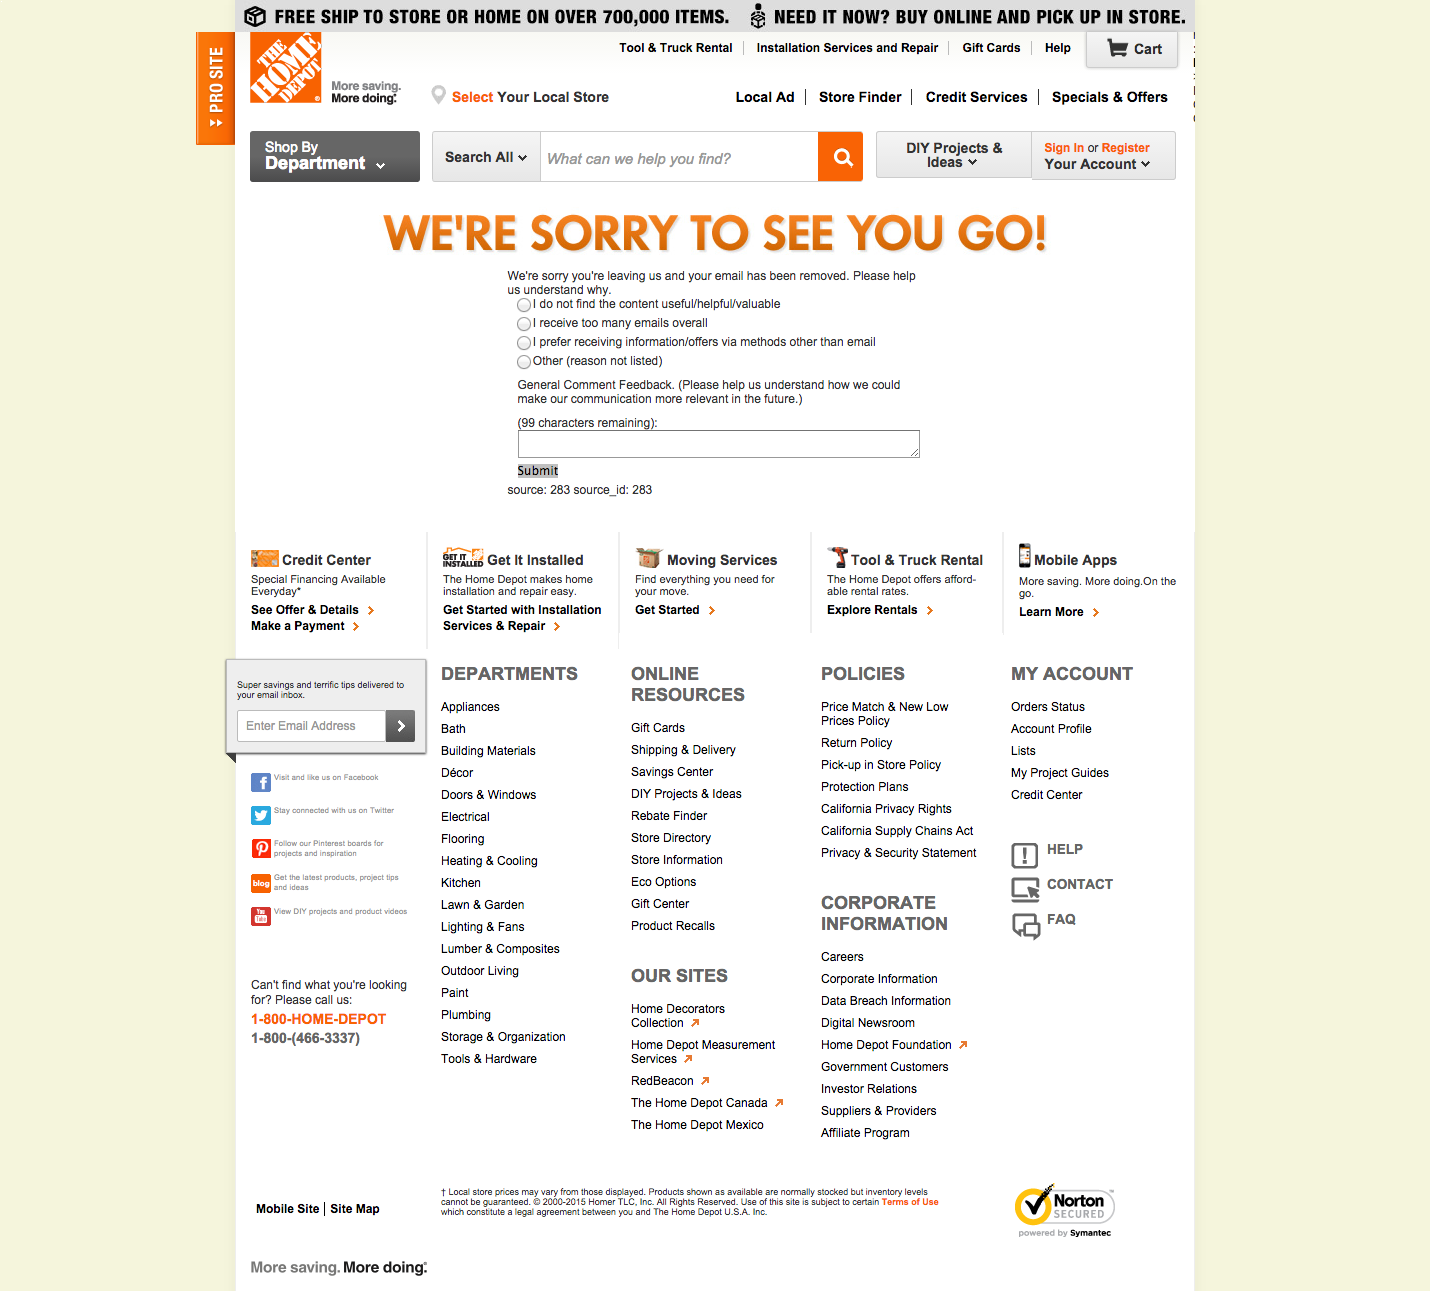 The Home Depot unsubscribe page Preferences, Home tools